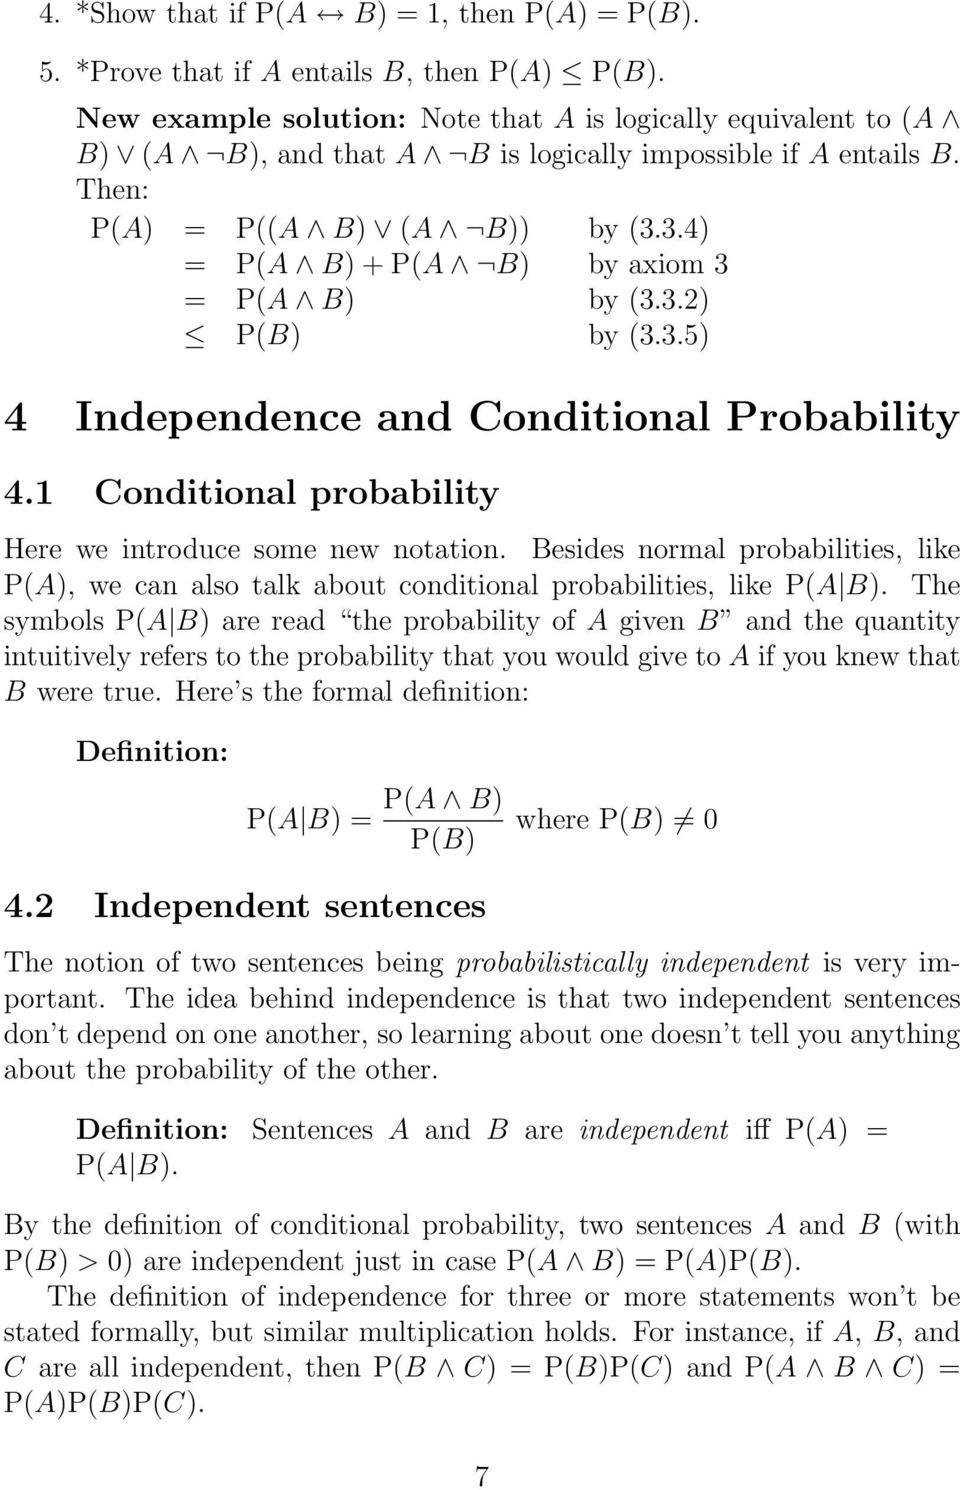 3.4) = P(A B) + P(A B) by axiom 3 = P(A B) by (3.3.2) P(B) by (3.3.5) 4 Independence and Conditional Probability 4.1 Conditional probability Here we introduce some new notation.